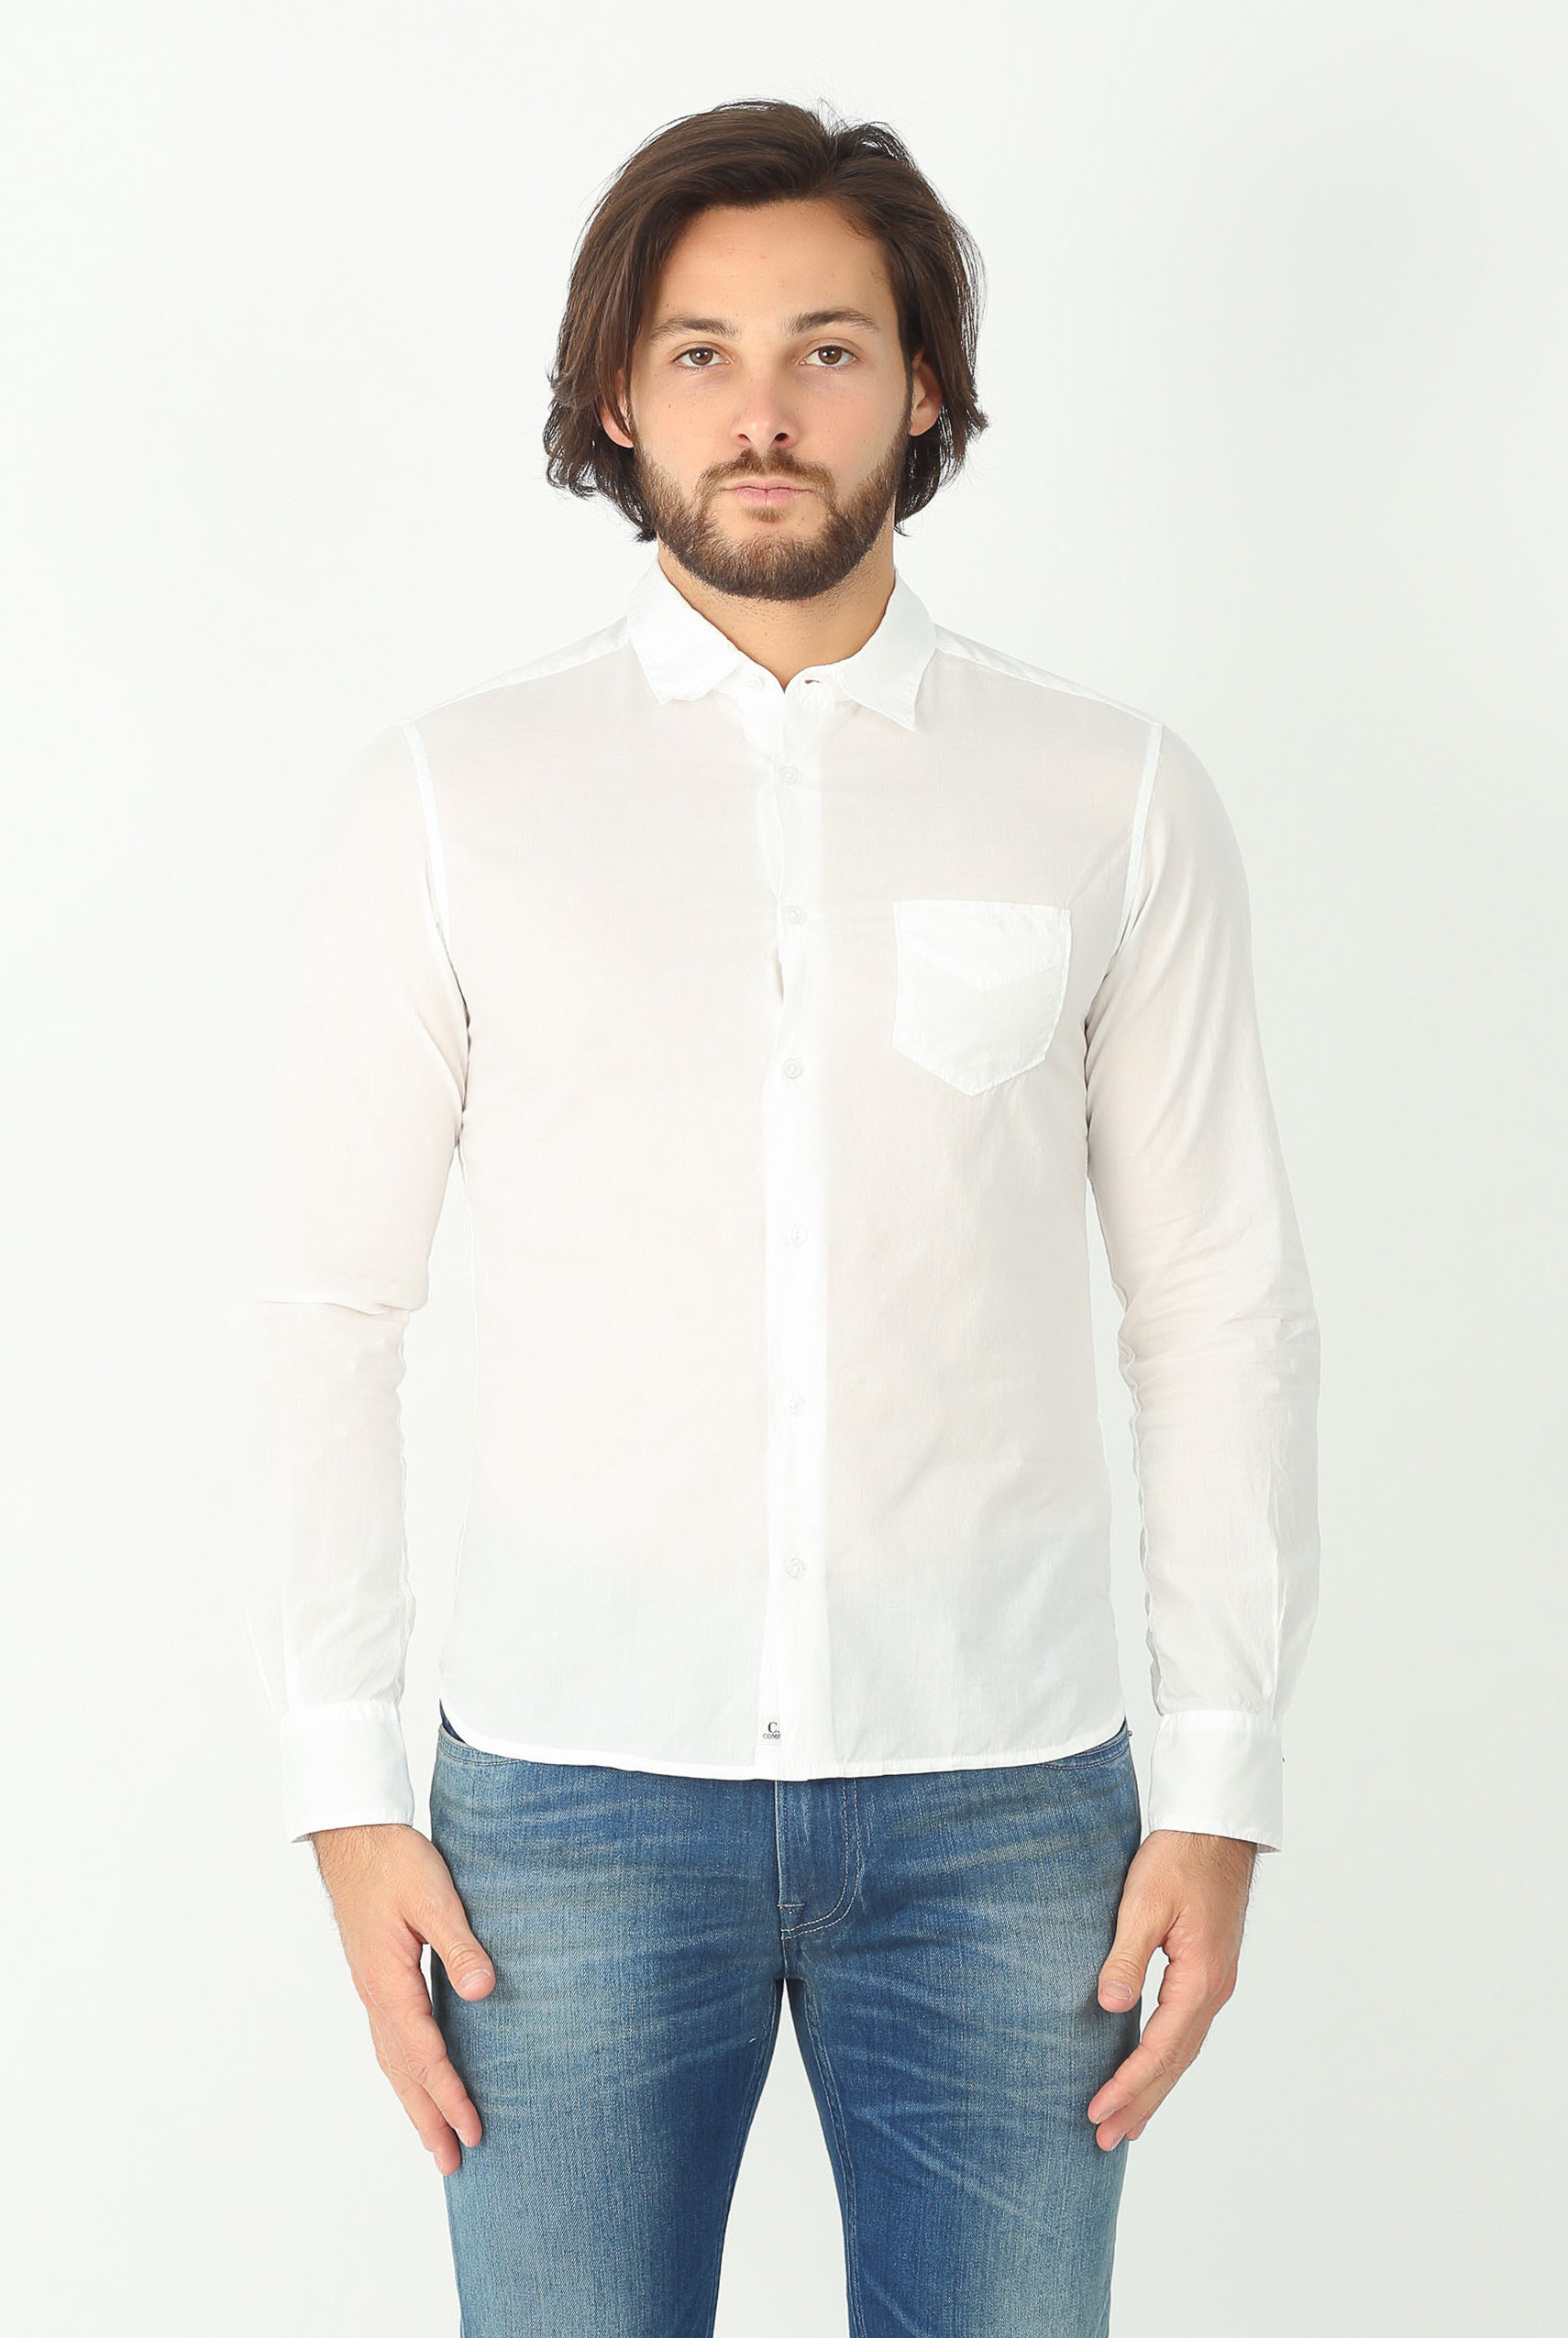 CHEMISE C.P. COMPANY BLANCHE H210A 4045G-112